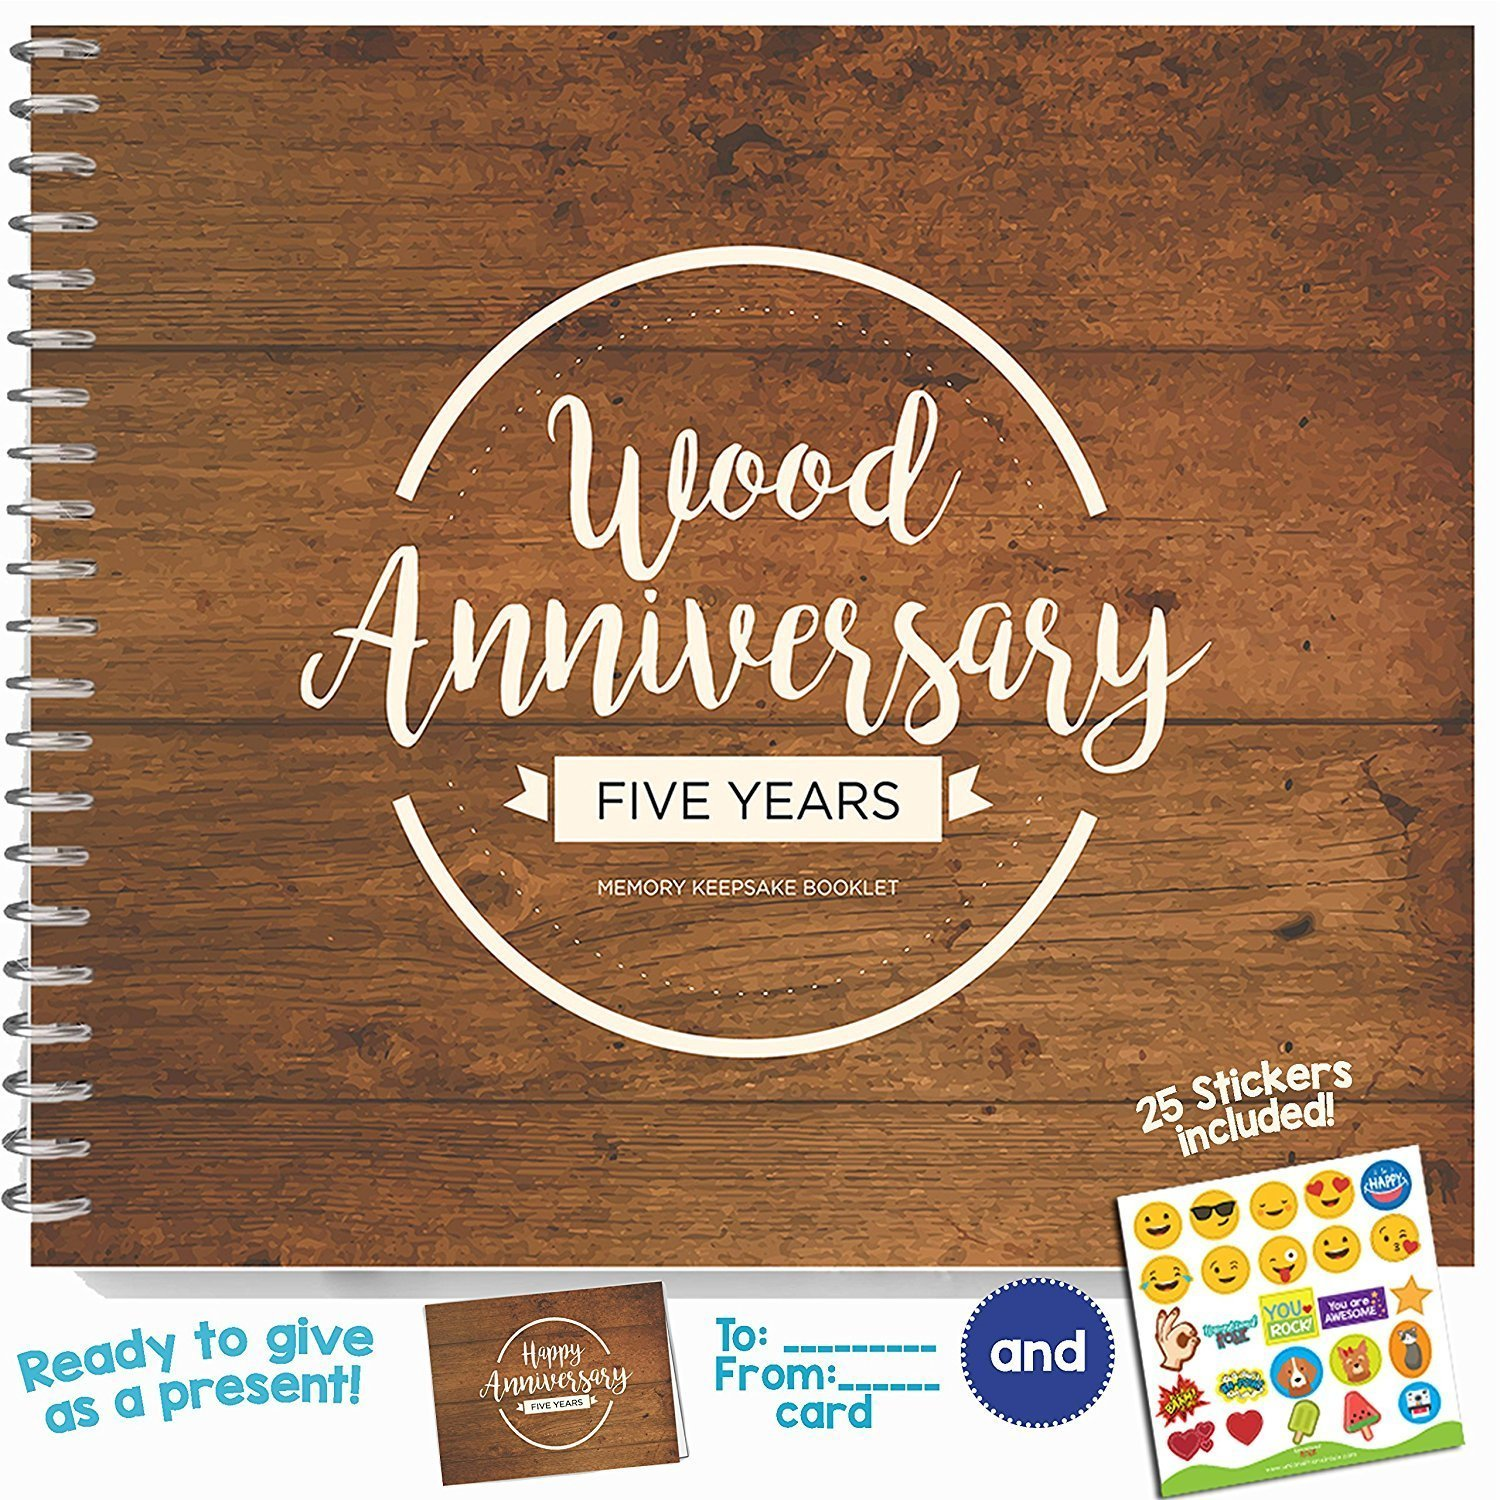 5th Wedding Anniversary Gift.5th Wedding Anniversary Memory Booklet For Couples By Unconditional Rosie A Booklet For Celebrating The Most Awesome Fifth Year Ever